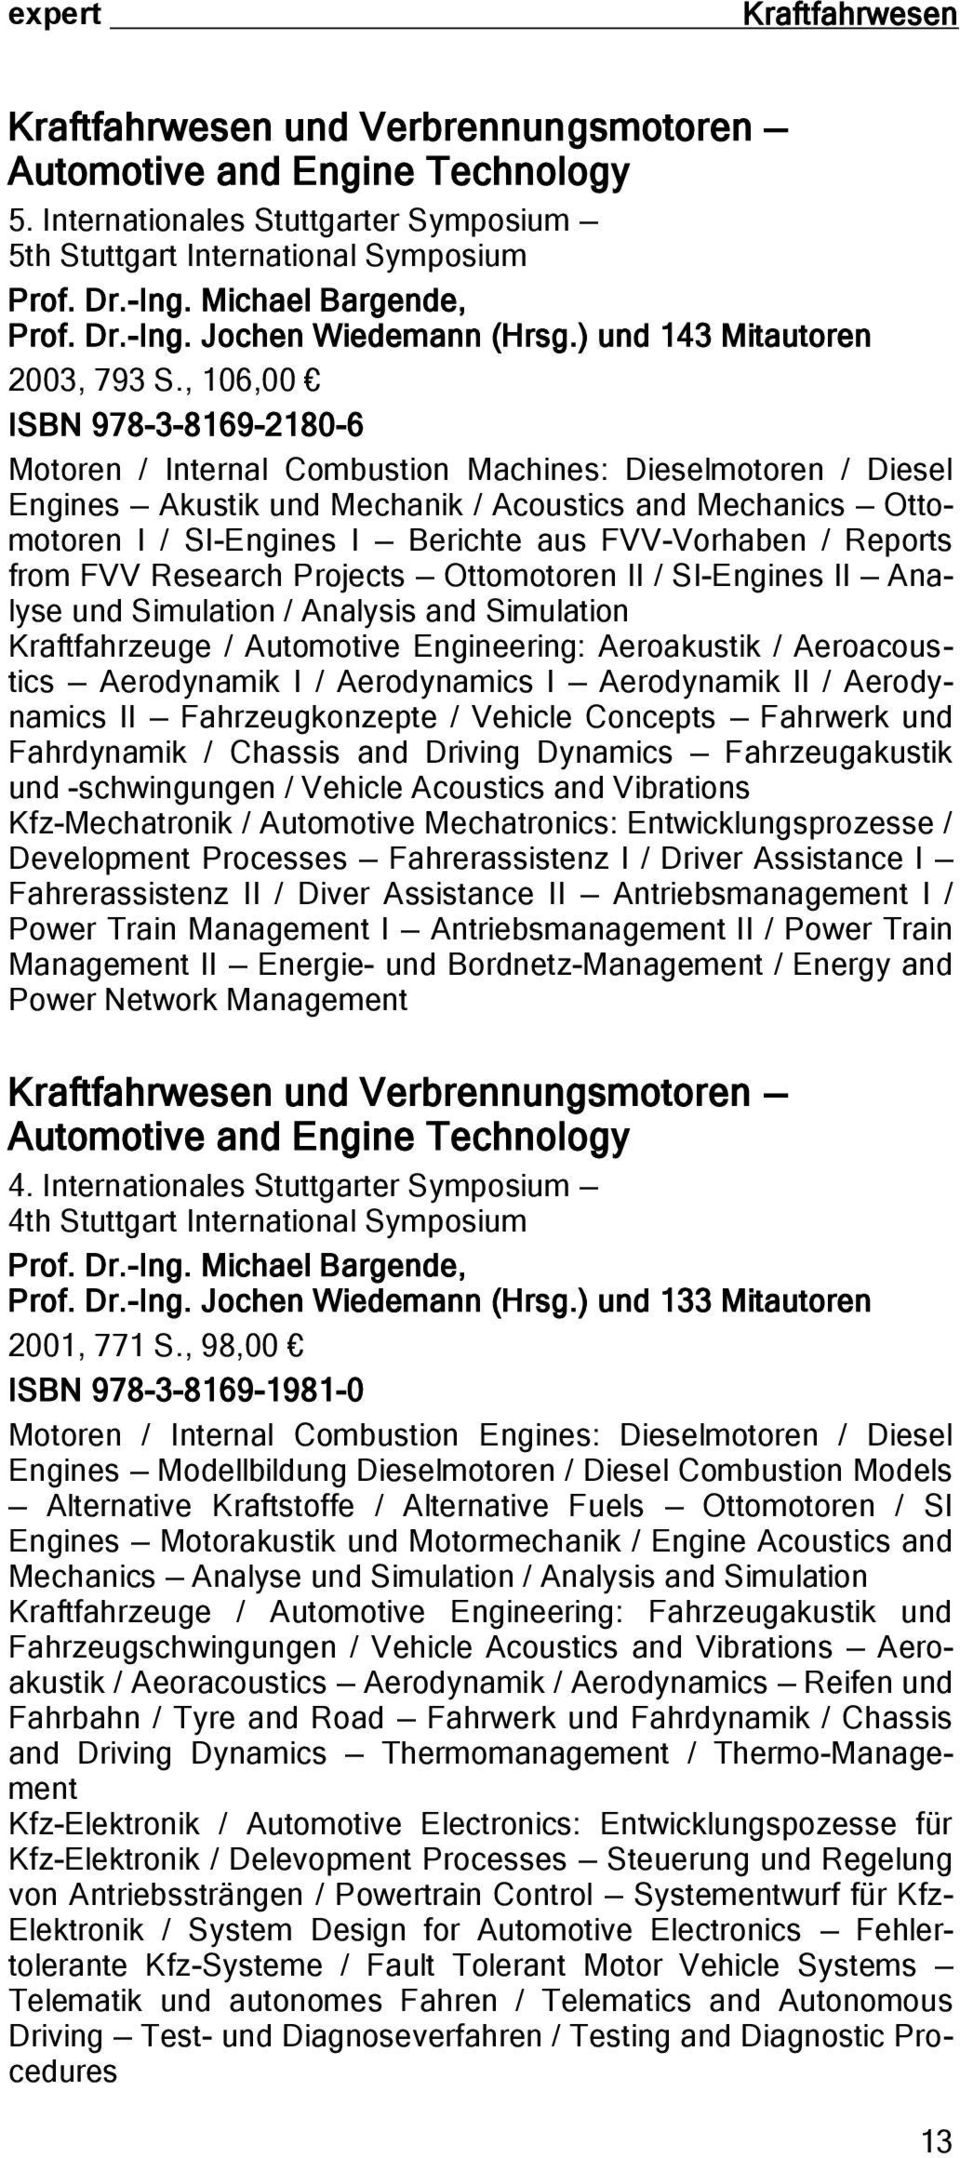 , 106,00 ISBN 978-3-8169-2180-6 Motoren / Internal Combustion Machines: Dieselmotoren / Diesel Engines Akustik und Mechanik / Acoustics and Mechanics Ottomotoren I / SI-Engines I Berichte aus